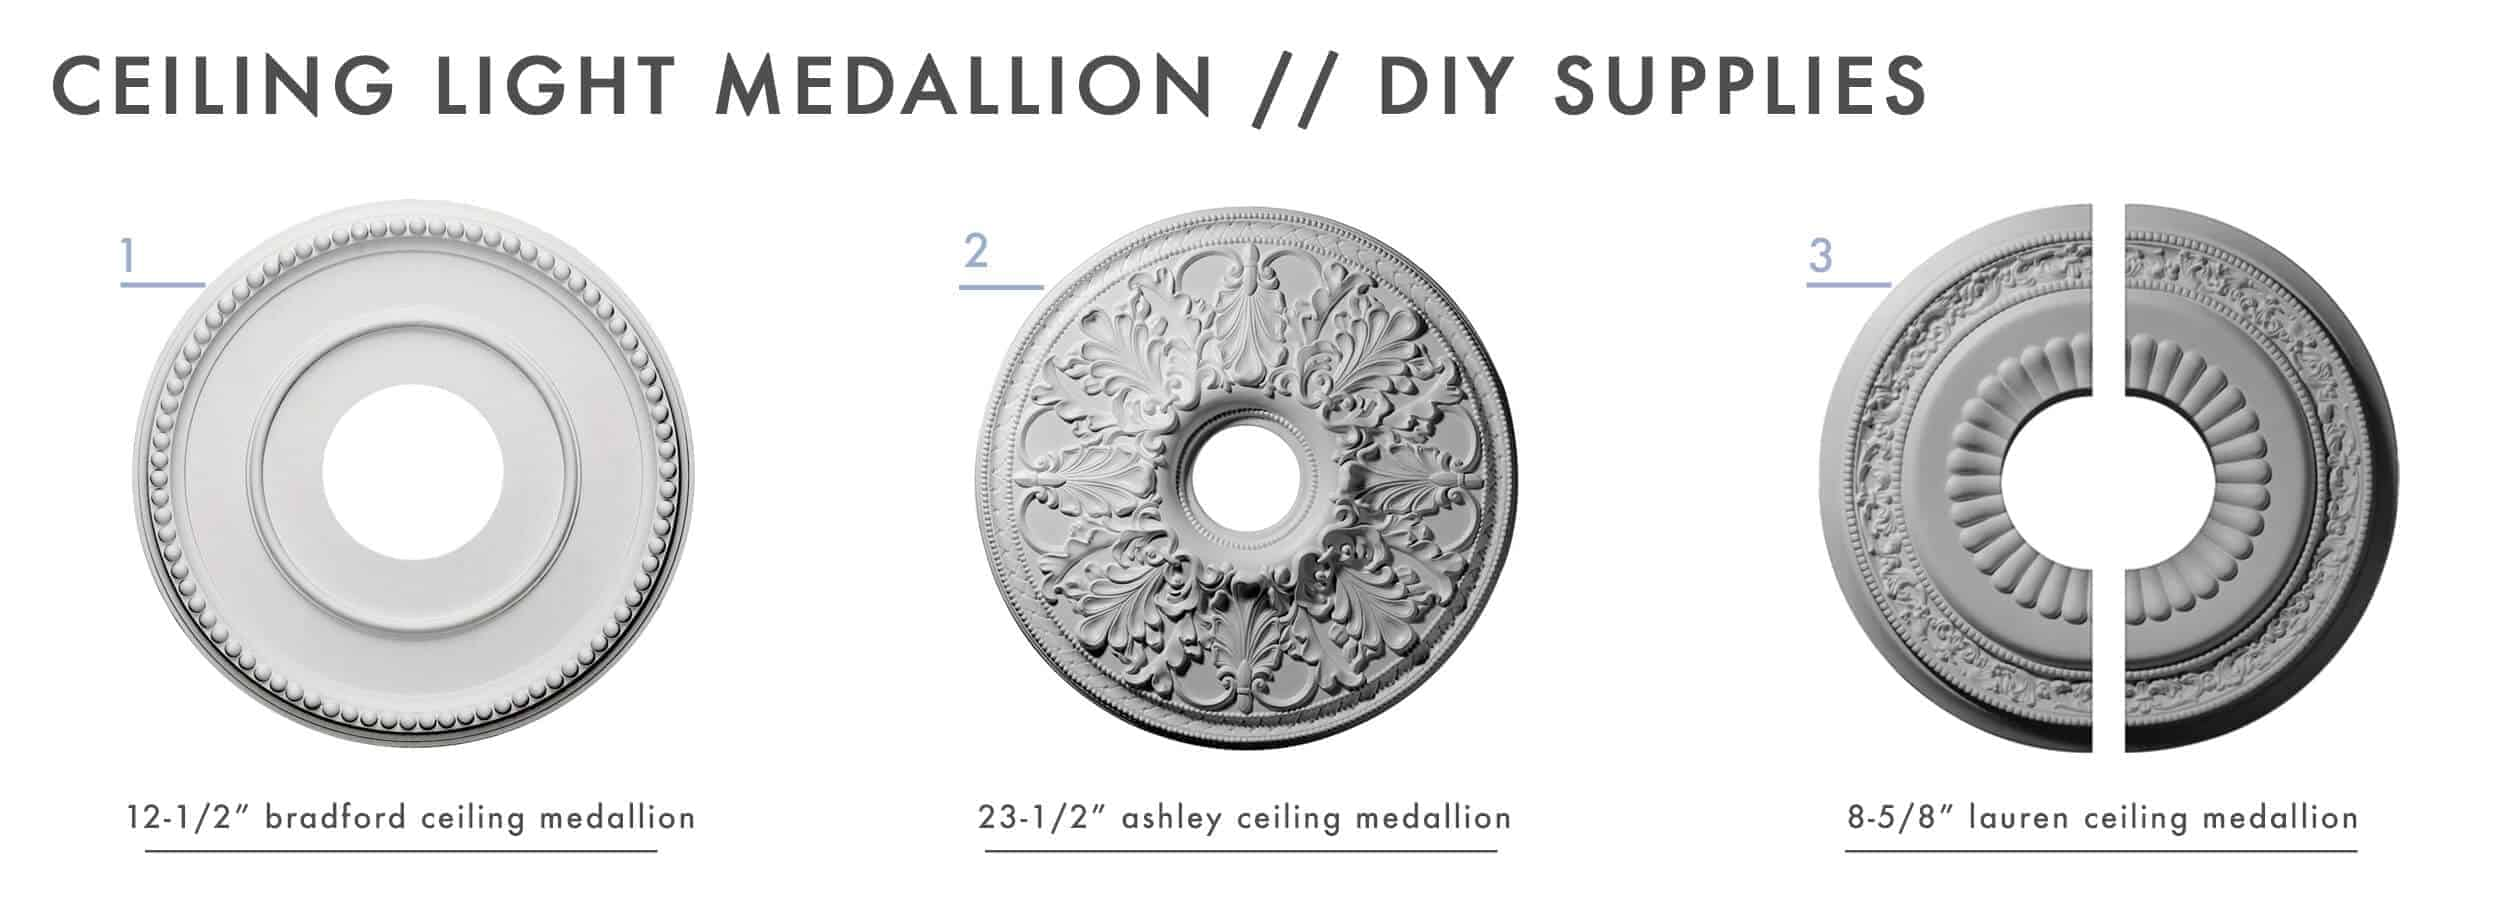 How To Add Character And Charm To Boring Architecture And Houses Ceiling Medallion Diy Supplies 01